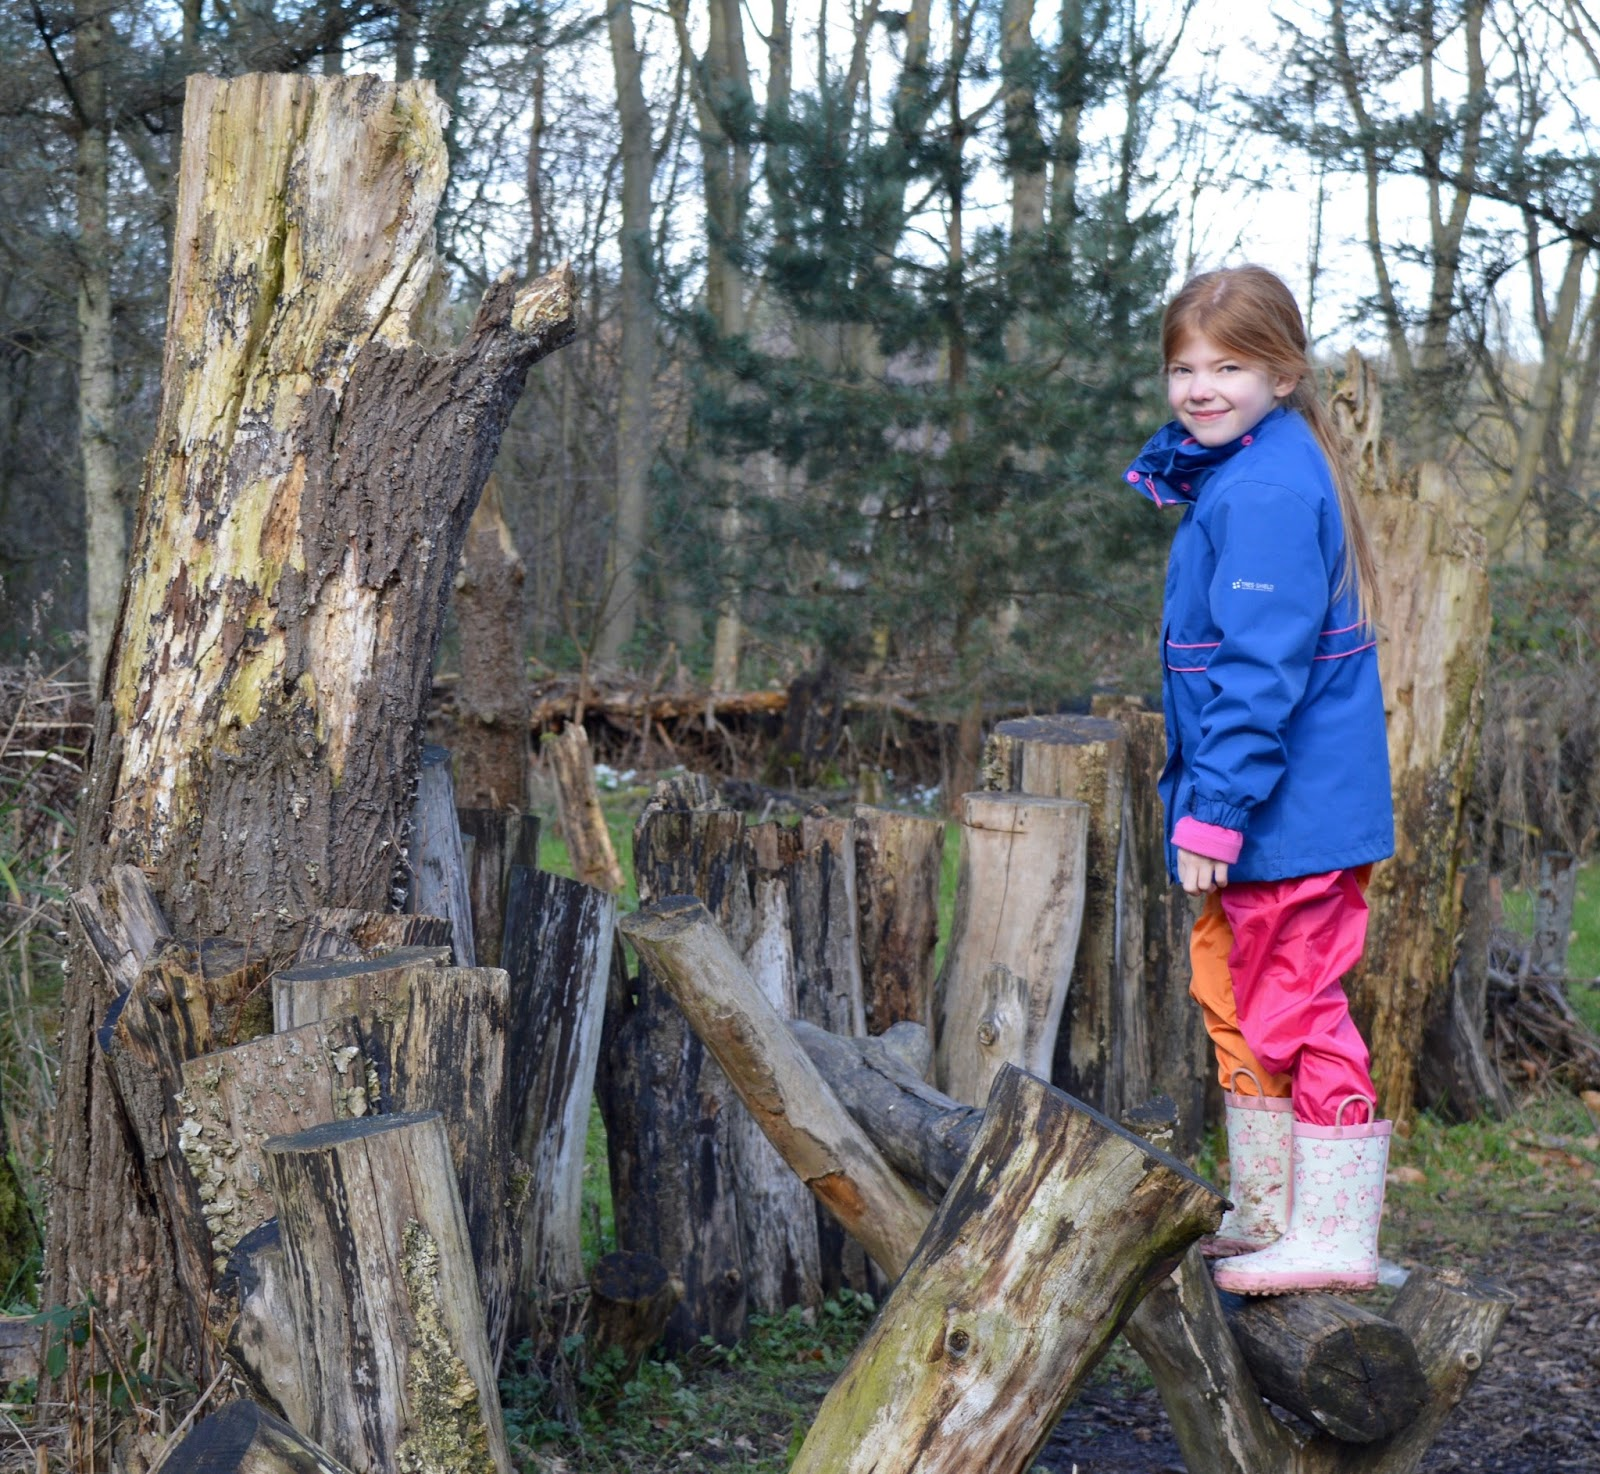 WWT Washington Wetland Centre | An Accessible North East Day Out for the Whole Family - climbing on trees